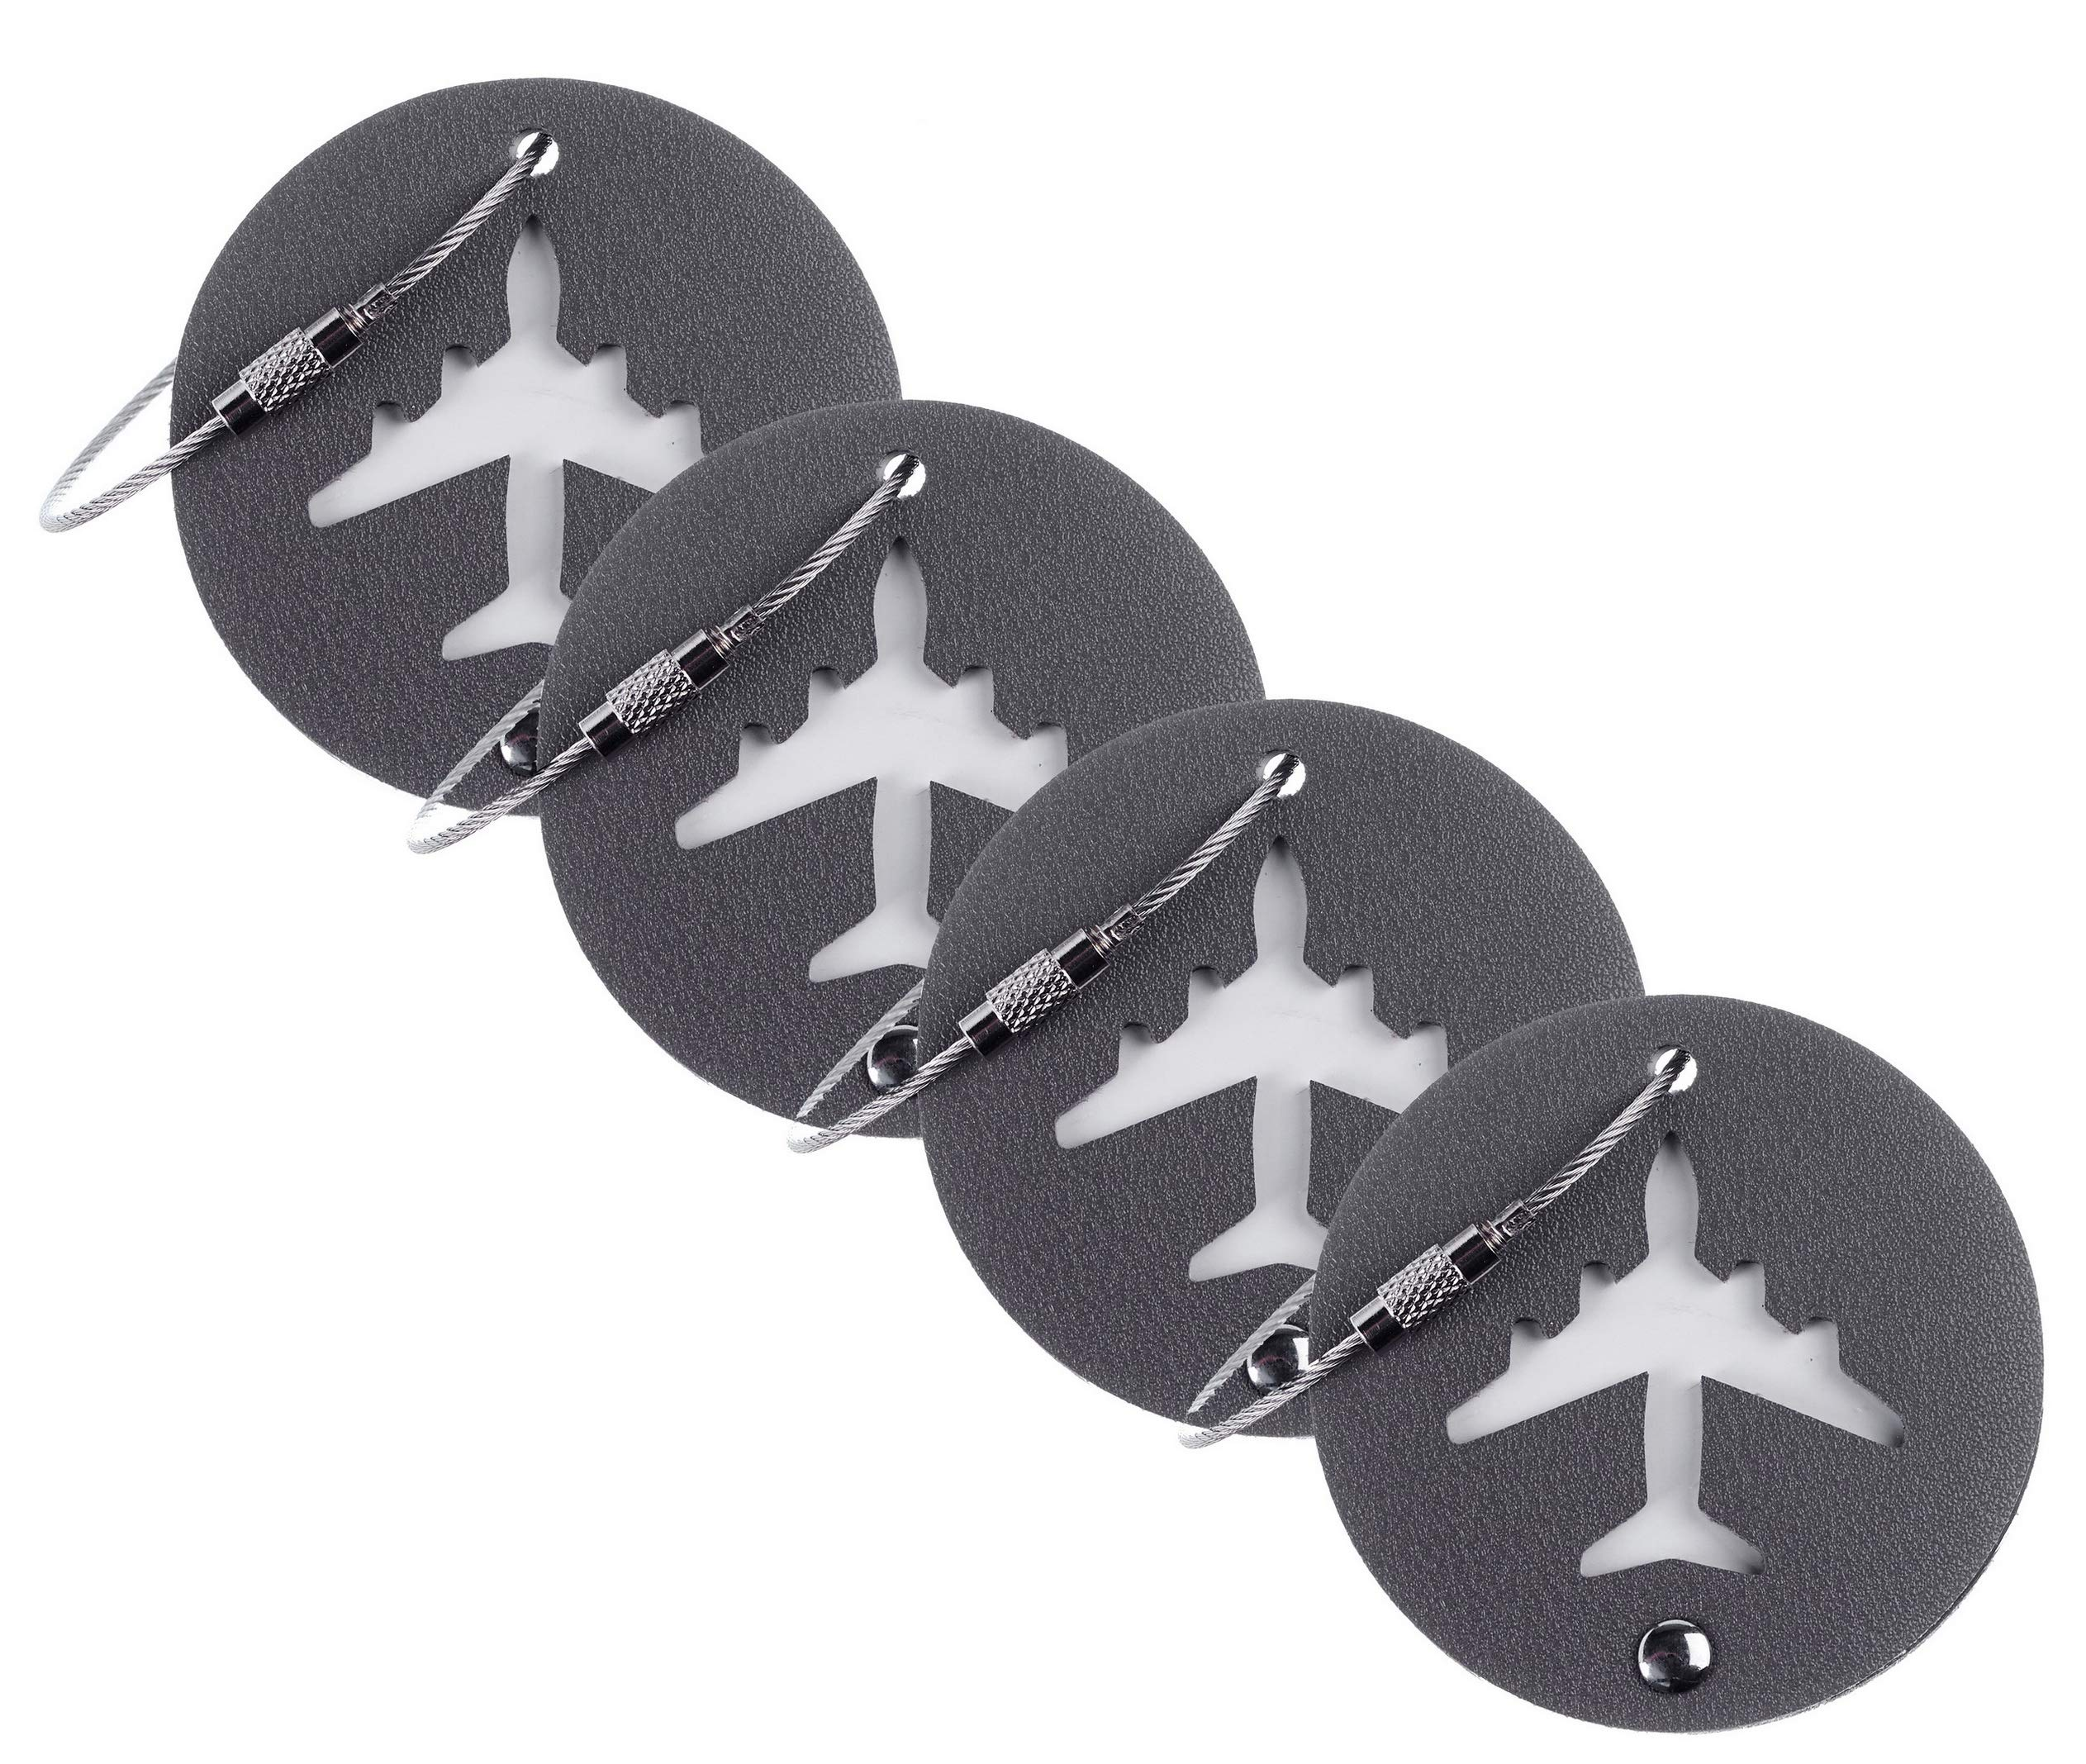 BSWolf Leather Luggage Bag Instrument Tag Cirlce (grey deep 4 pcs set)